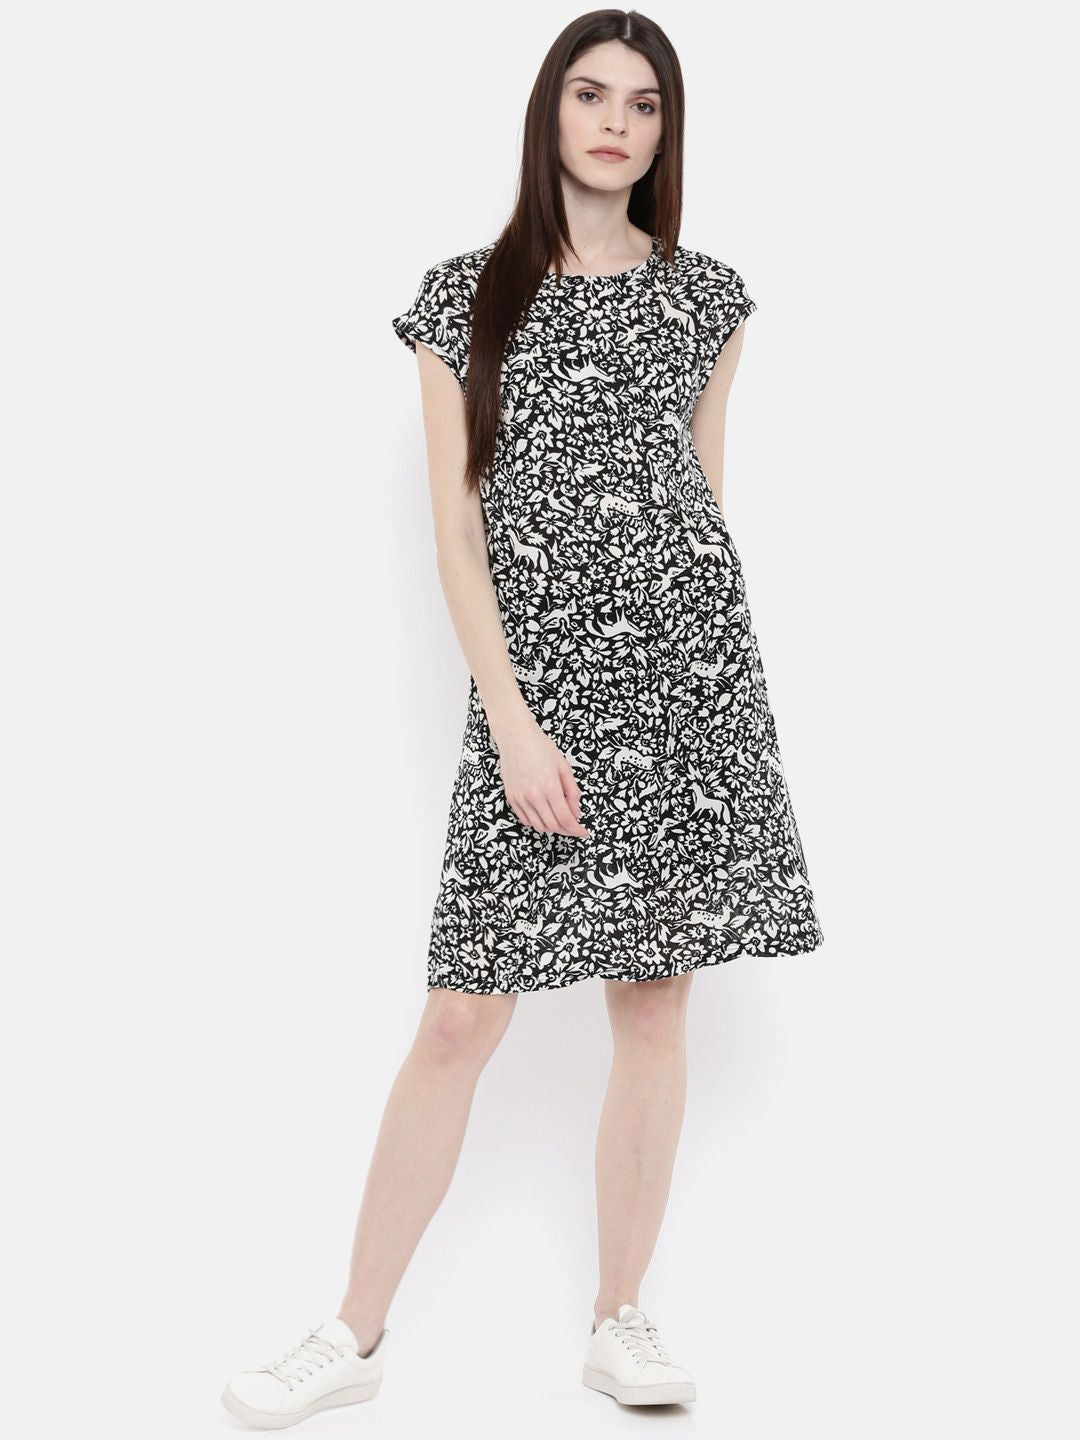 The Black Printed WFH A-Line Dress